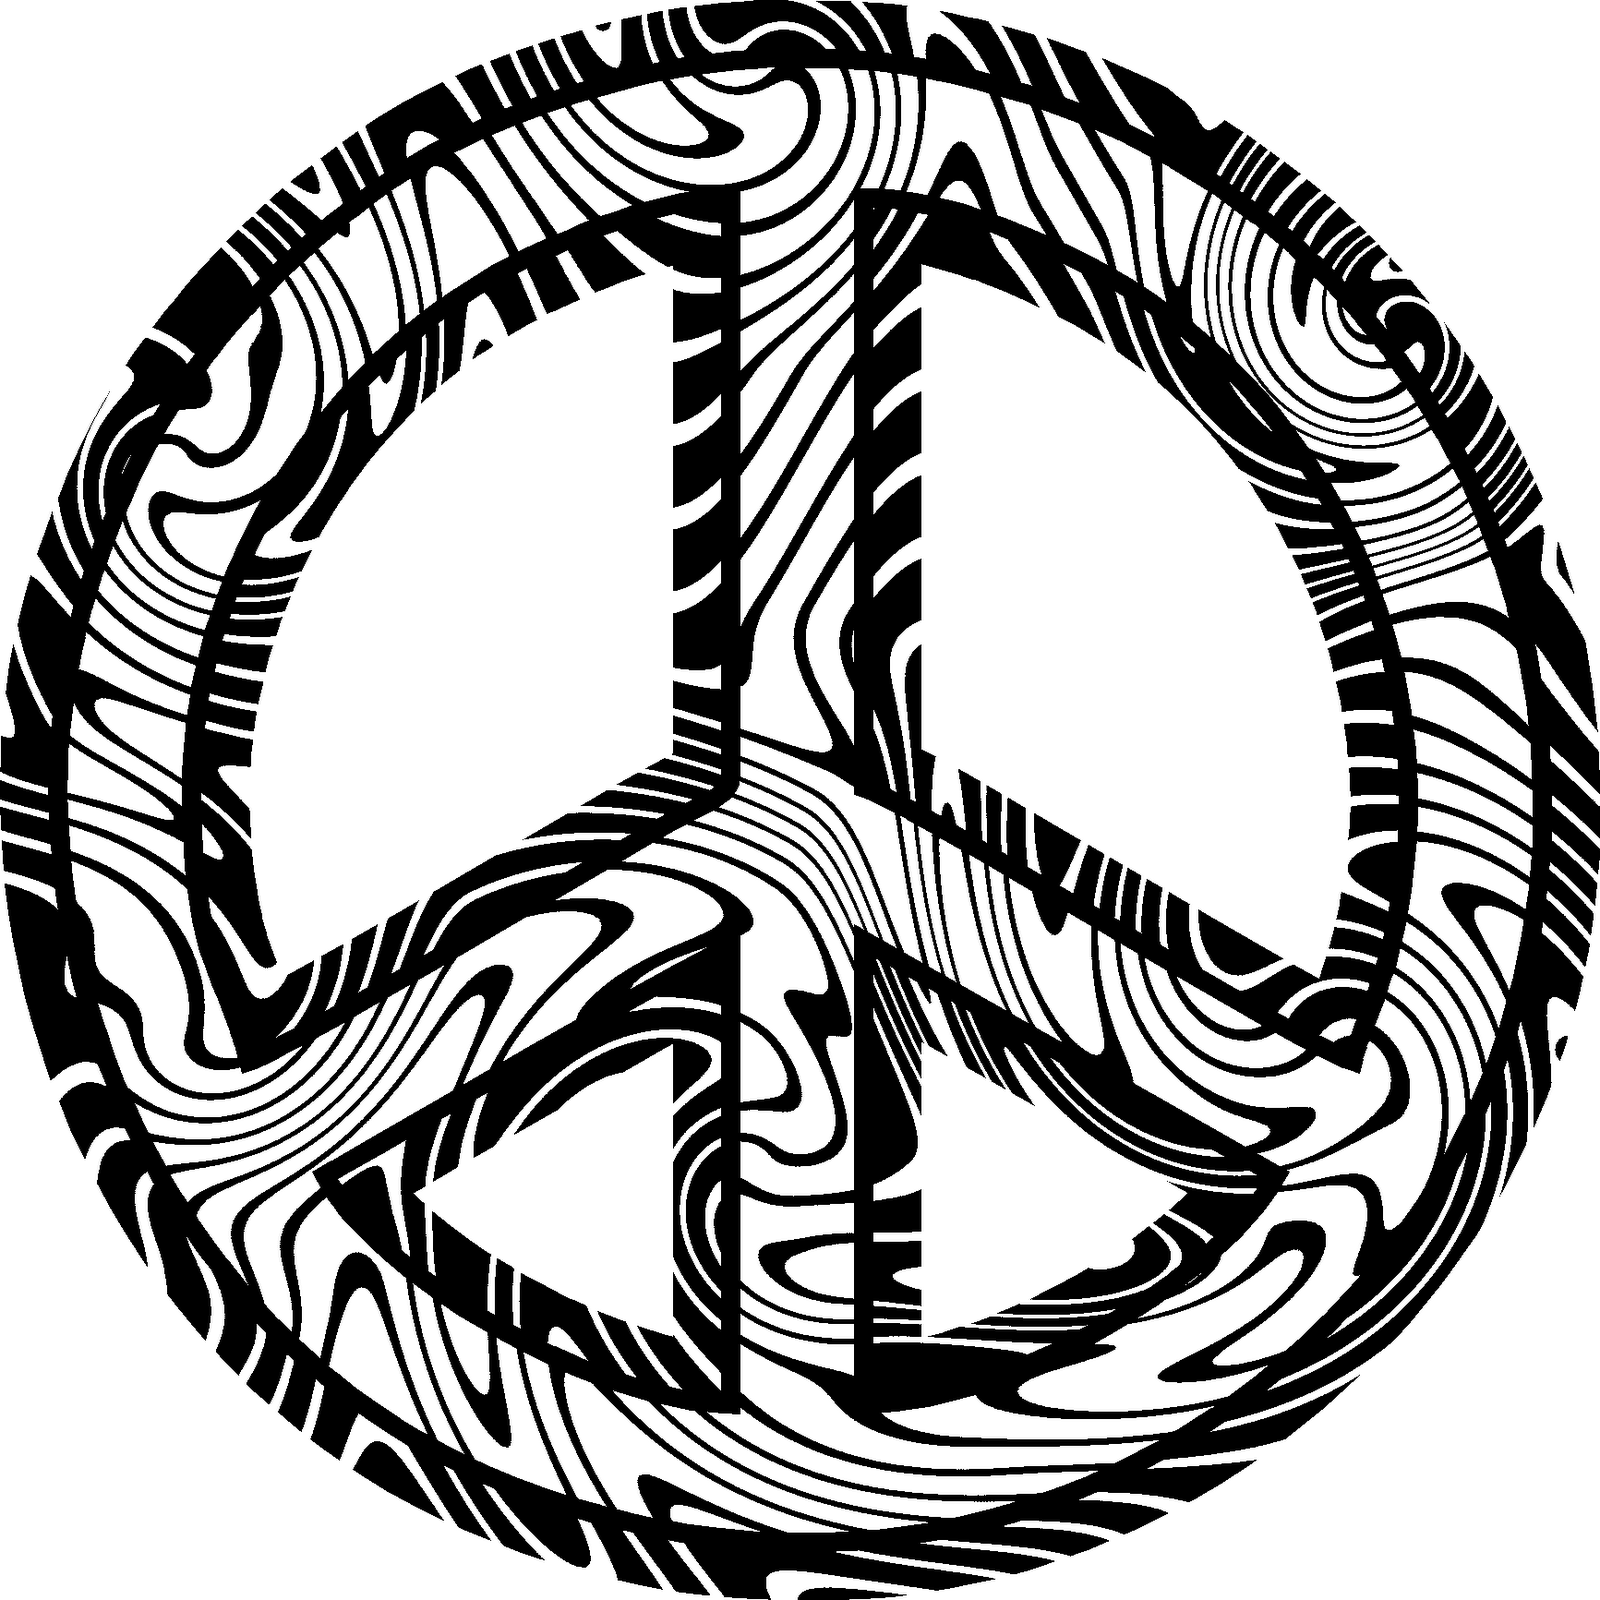 Hard Coloring Pages | materials coloring sheet about peace coloring ...